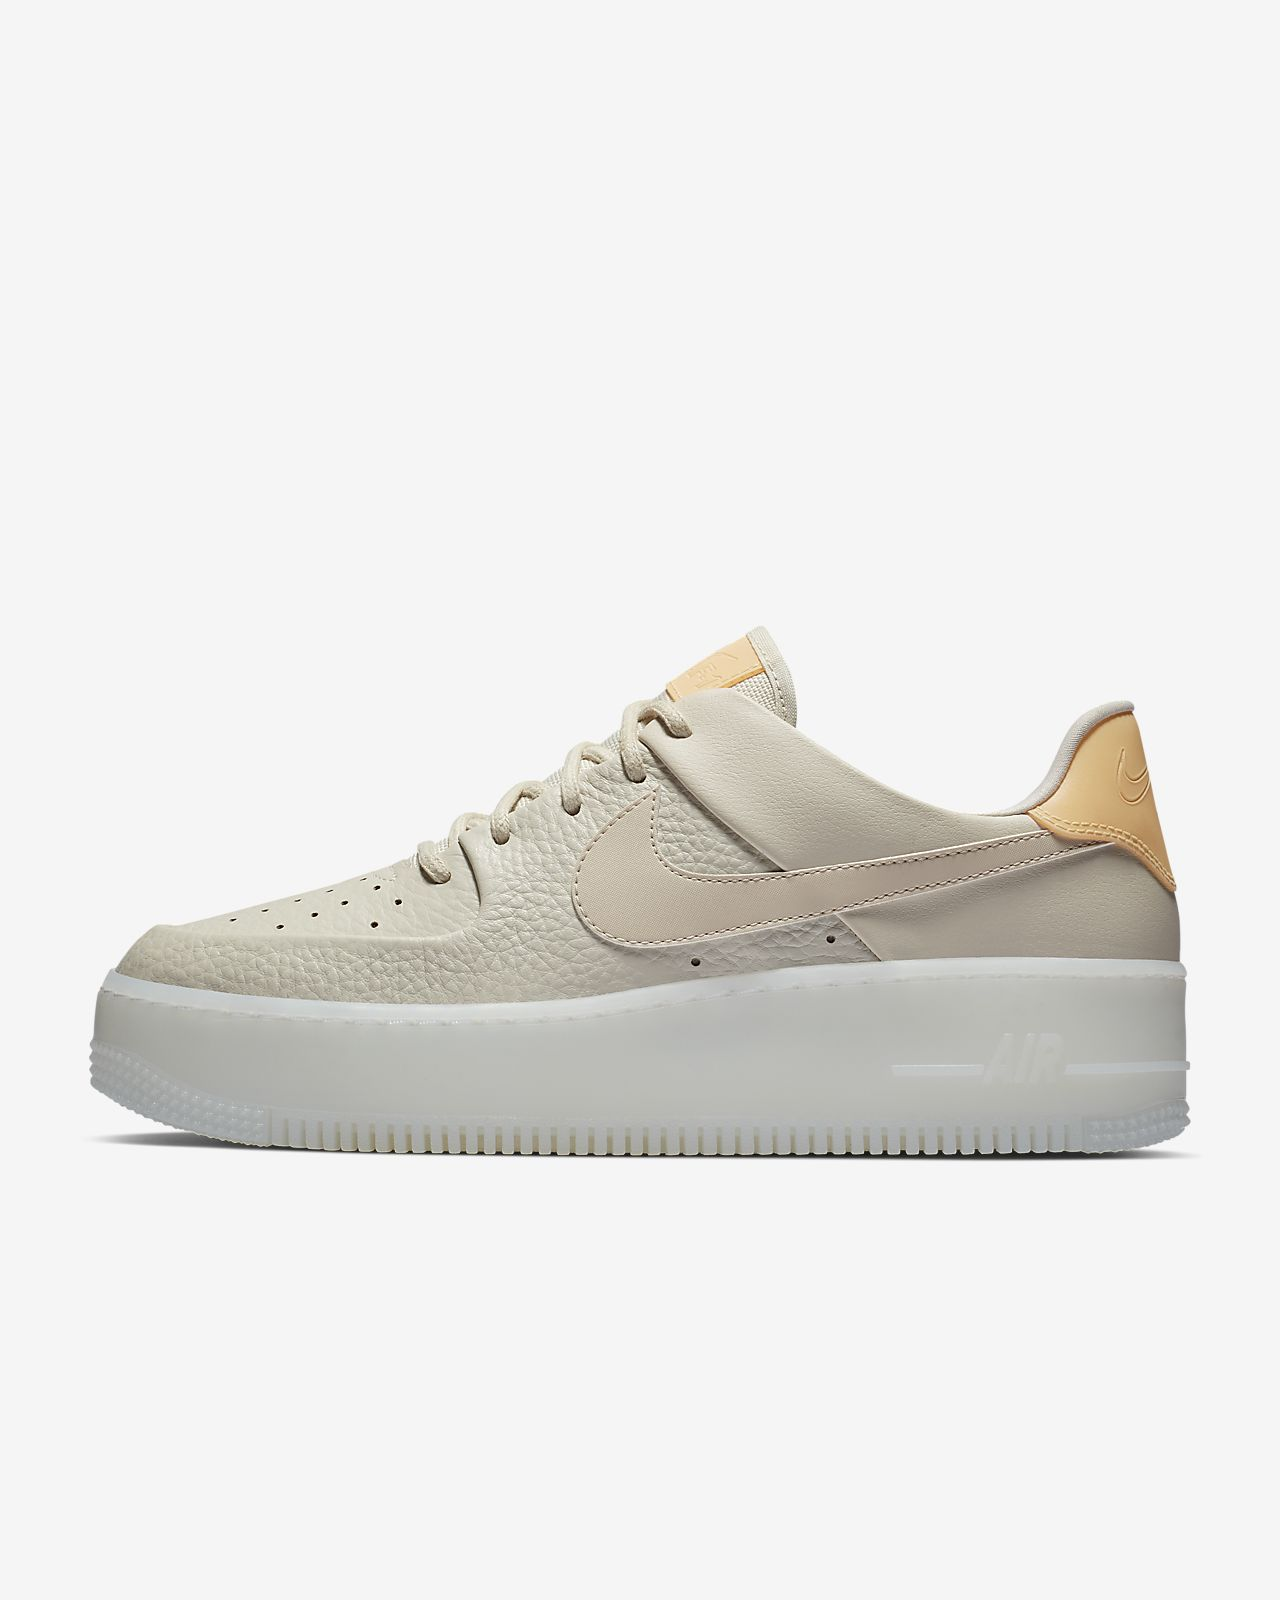 Nike Air Force 1 Sage Low LX Women's | Size?